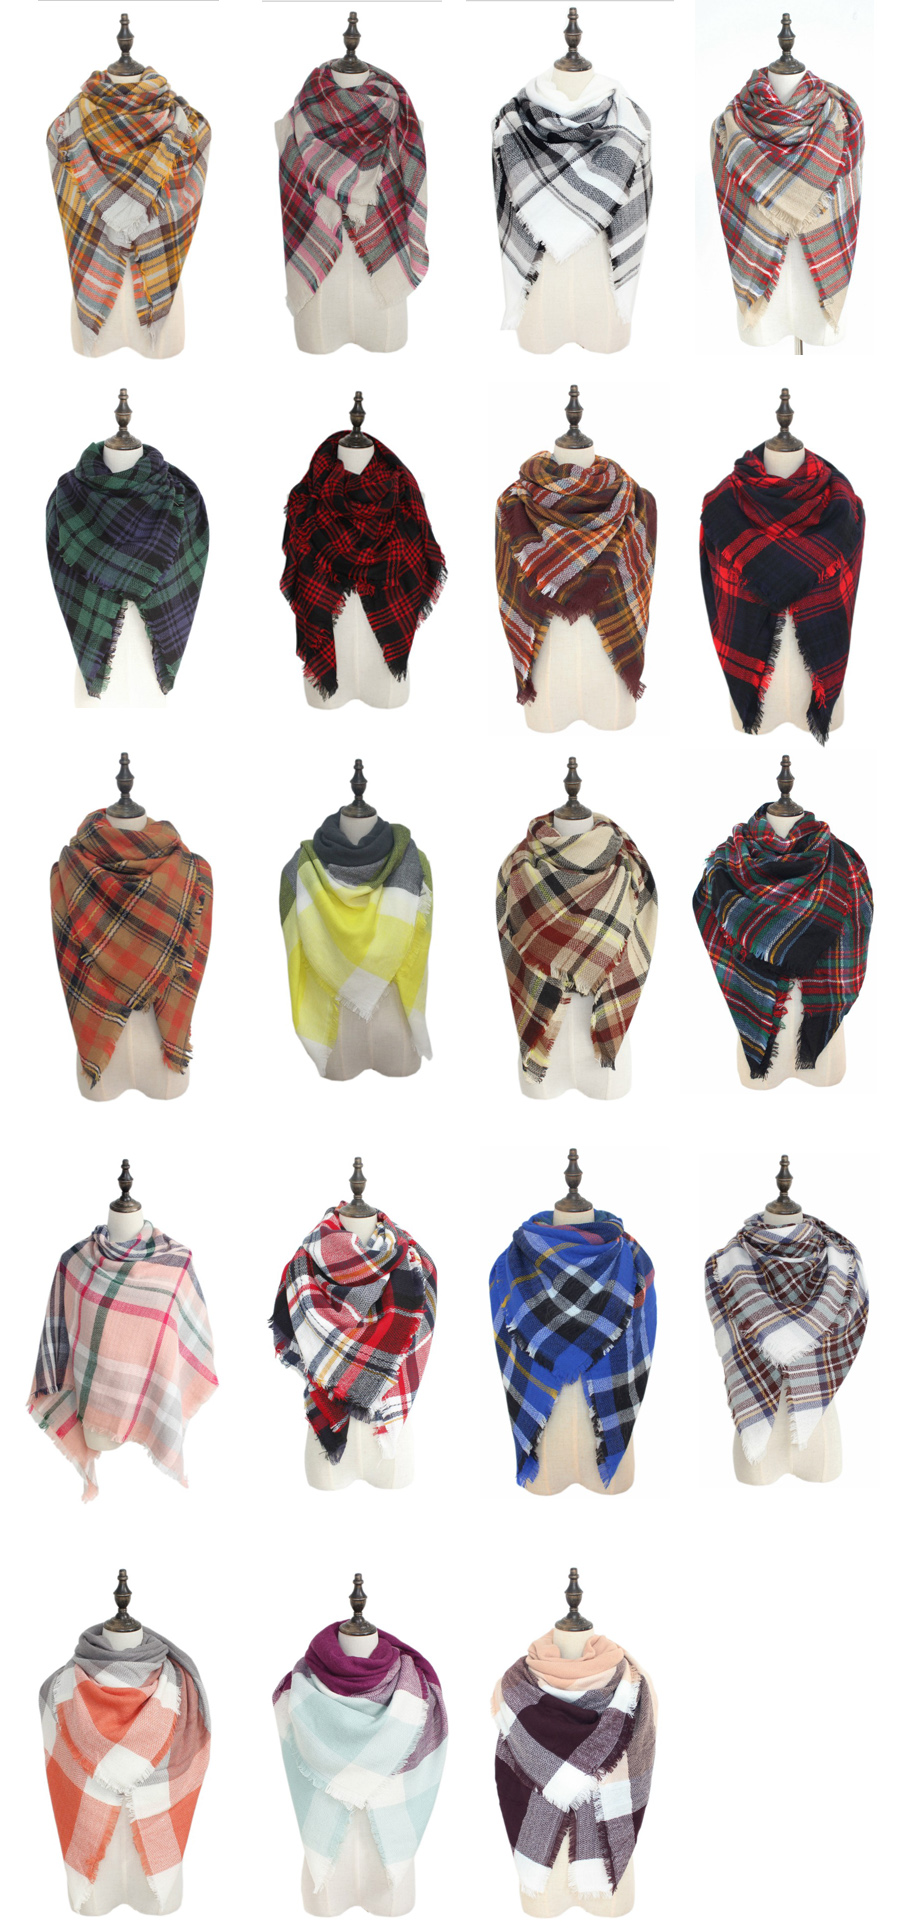 woman colorful plaid acrylic napped shawl